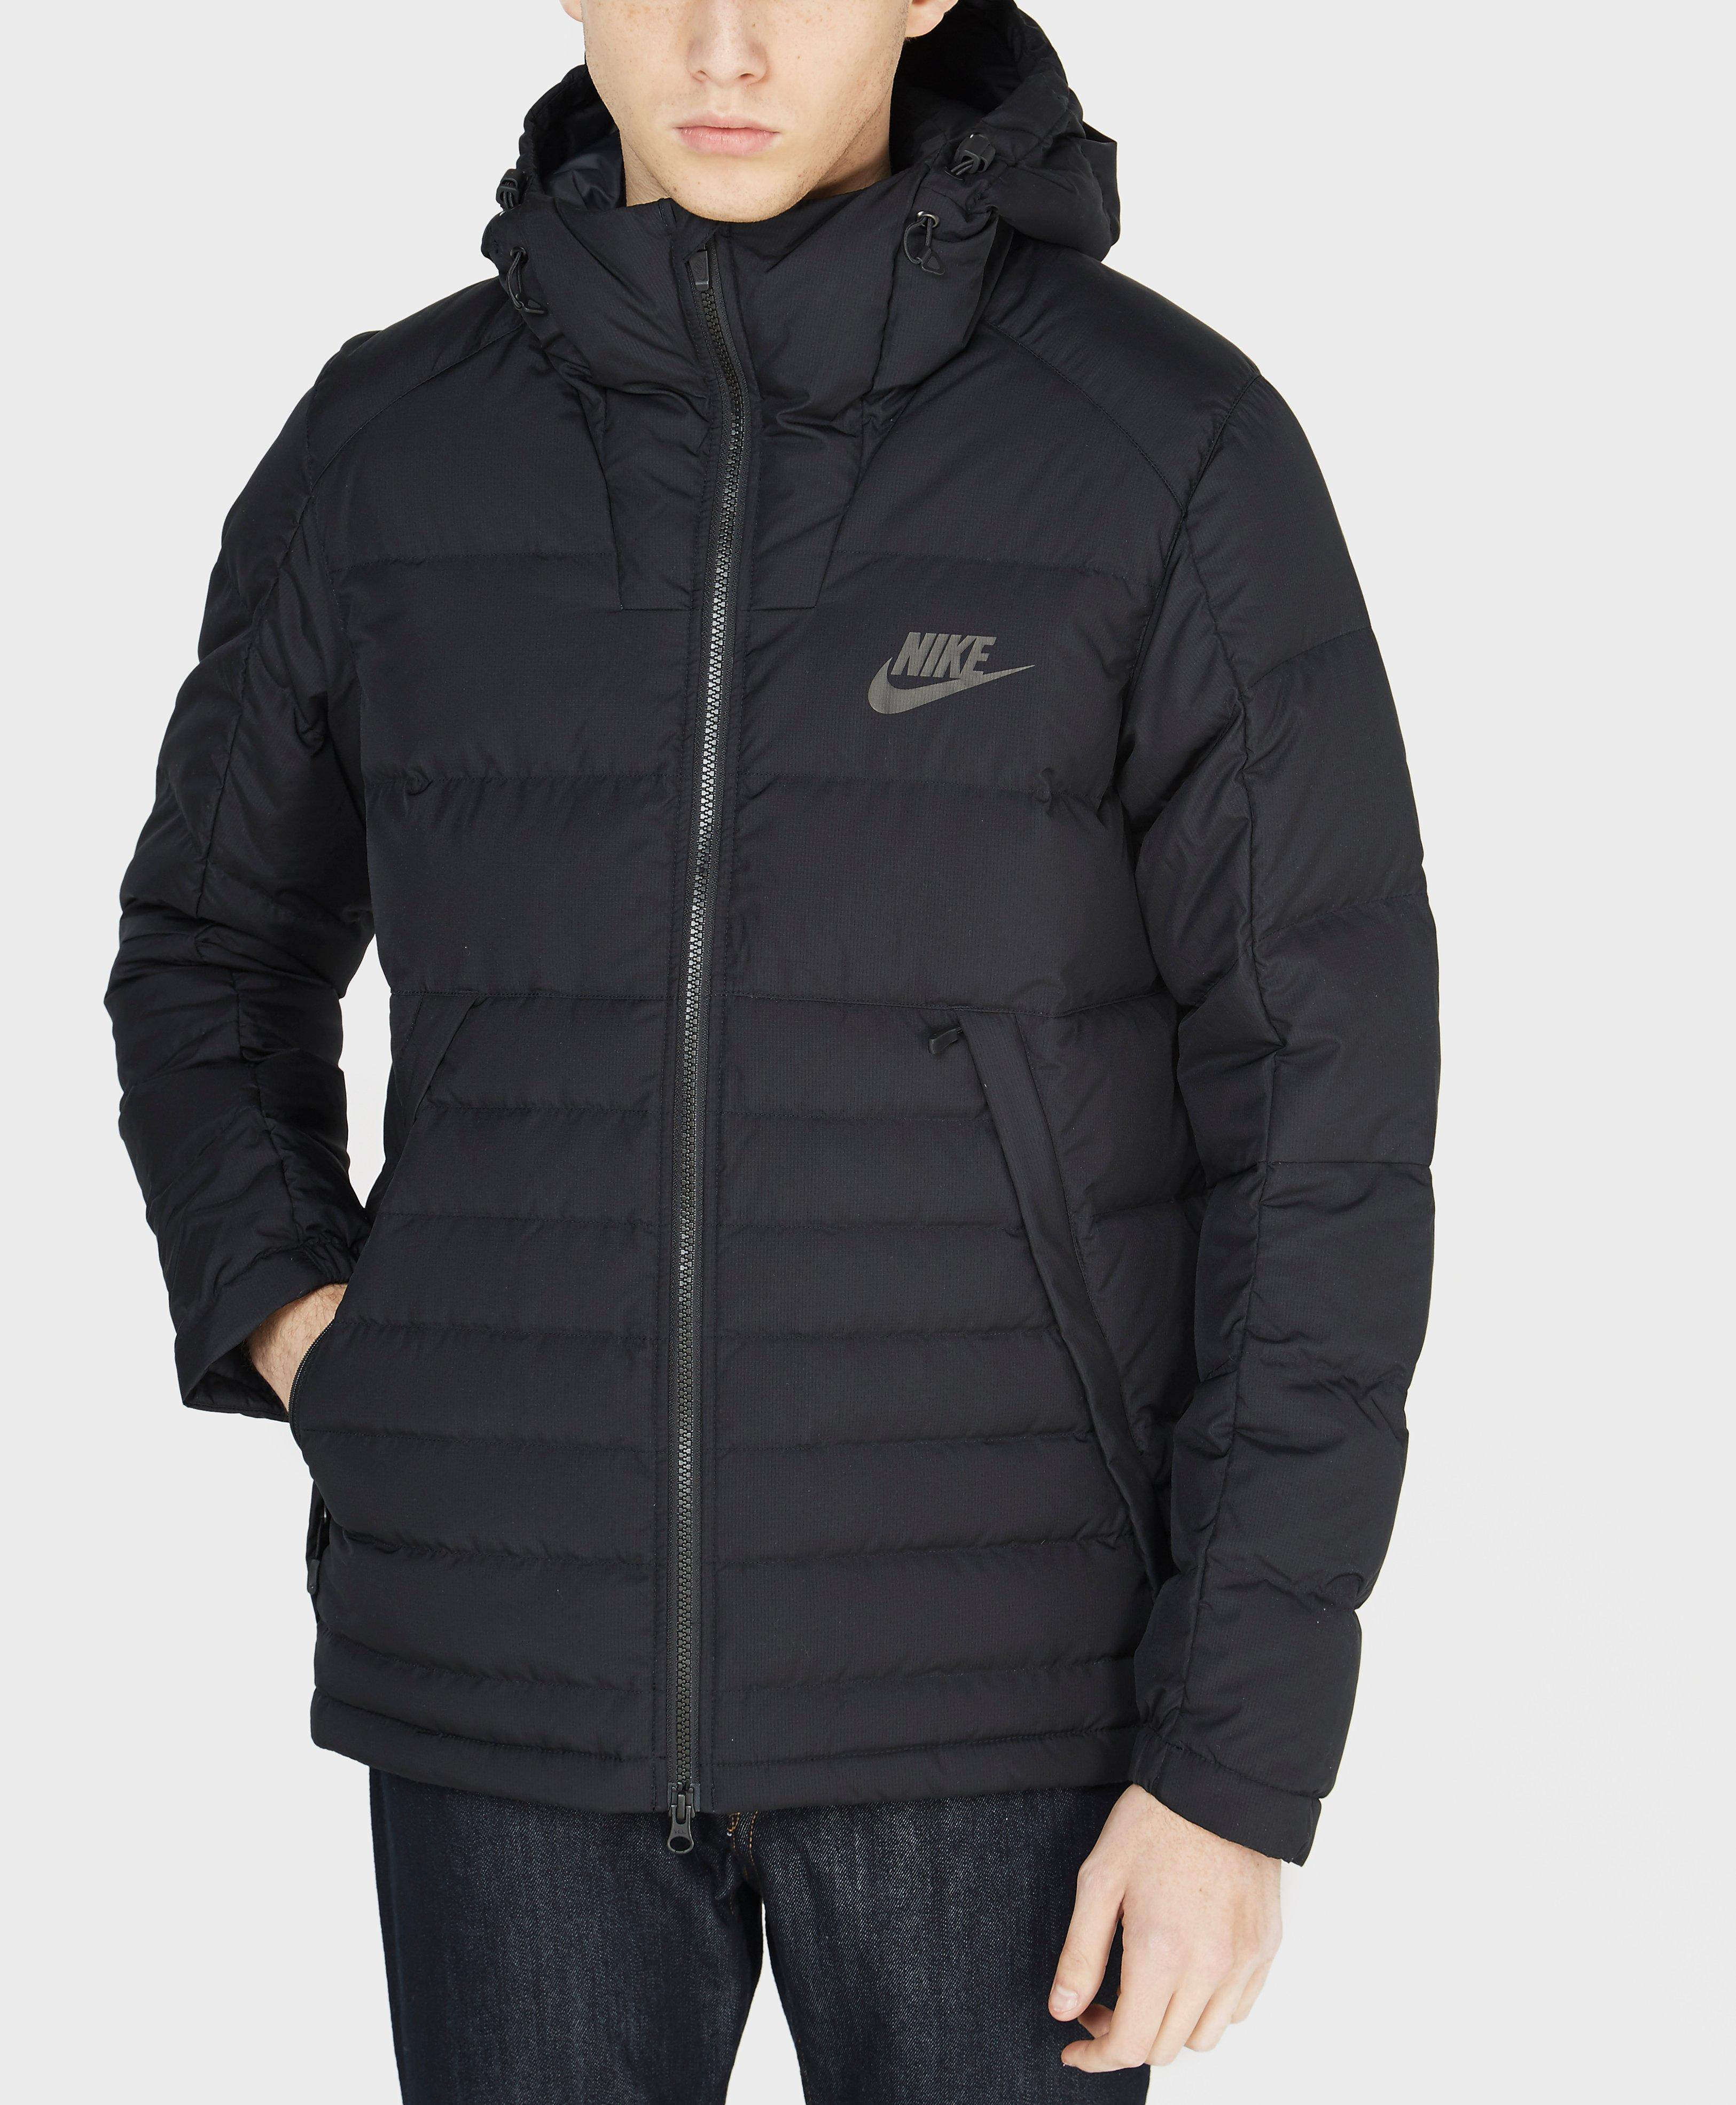 35a624b70f53 Nike Padded Down Jacket in Black for Men - Lyst